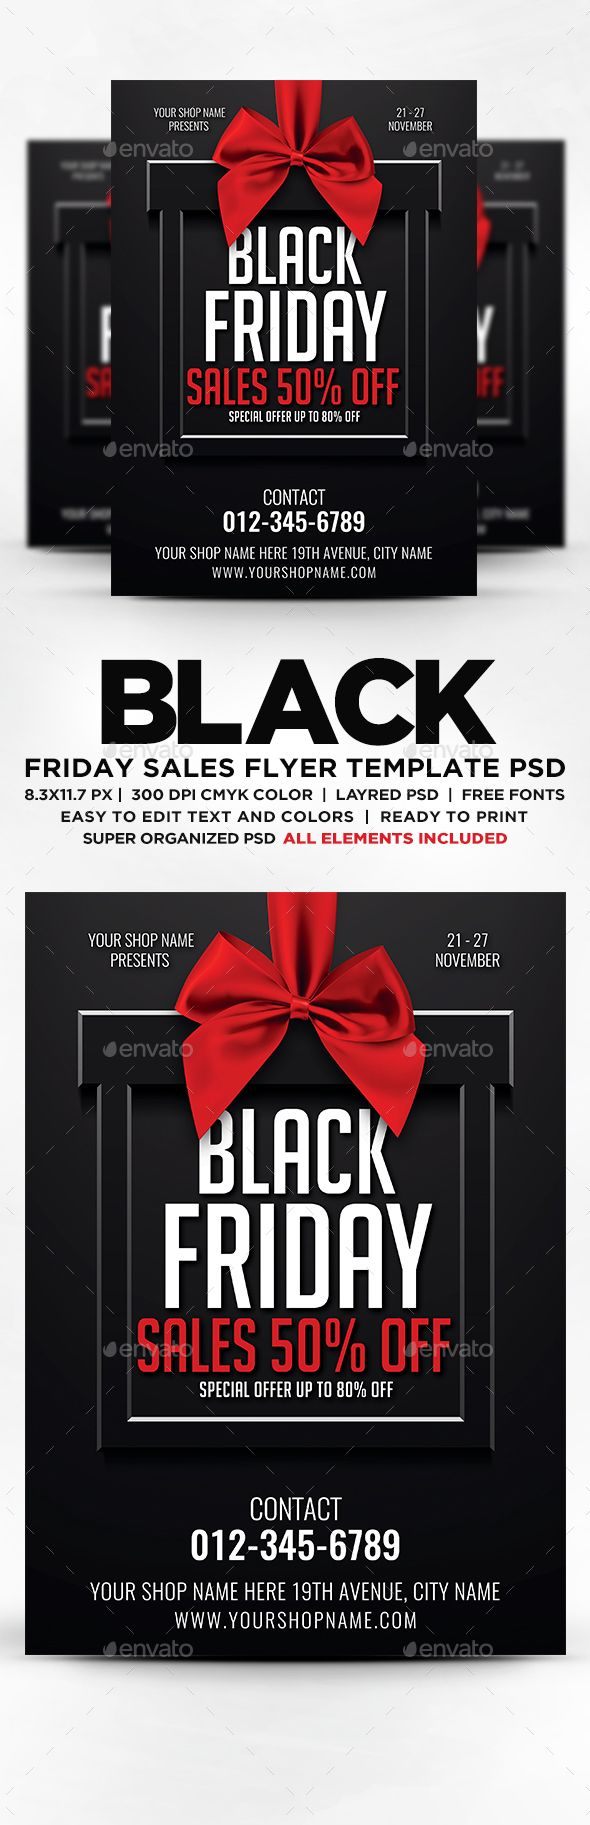 Black Friday Flyer — PSD black friday flyer